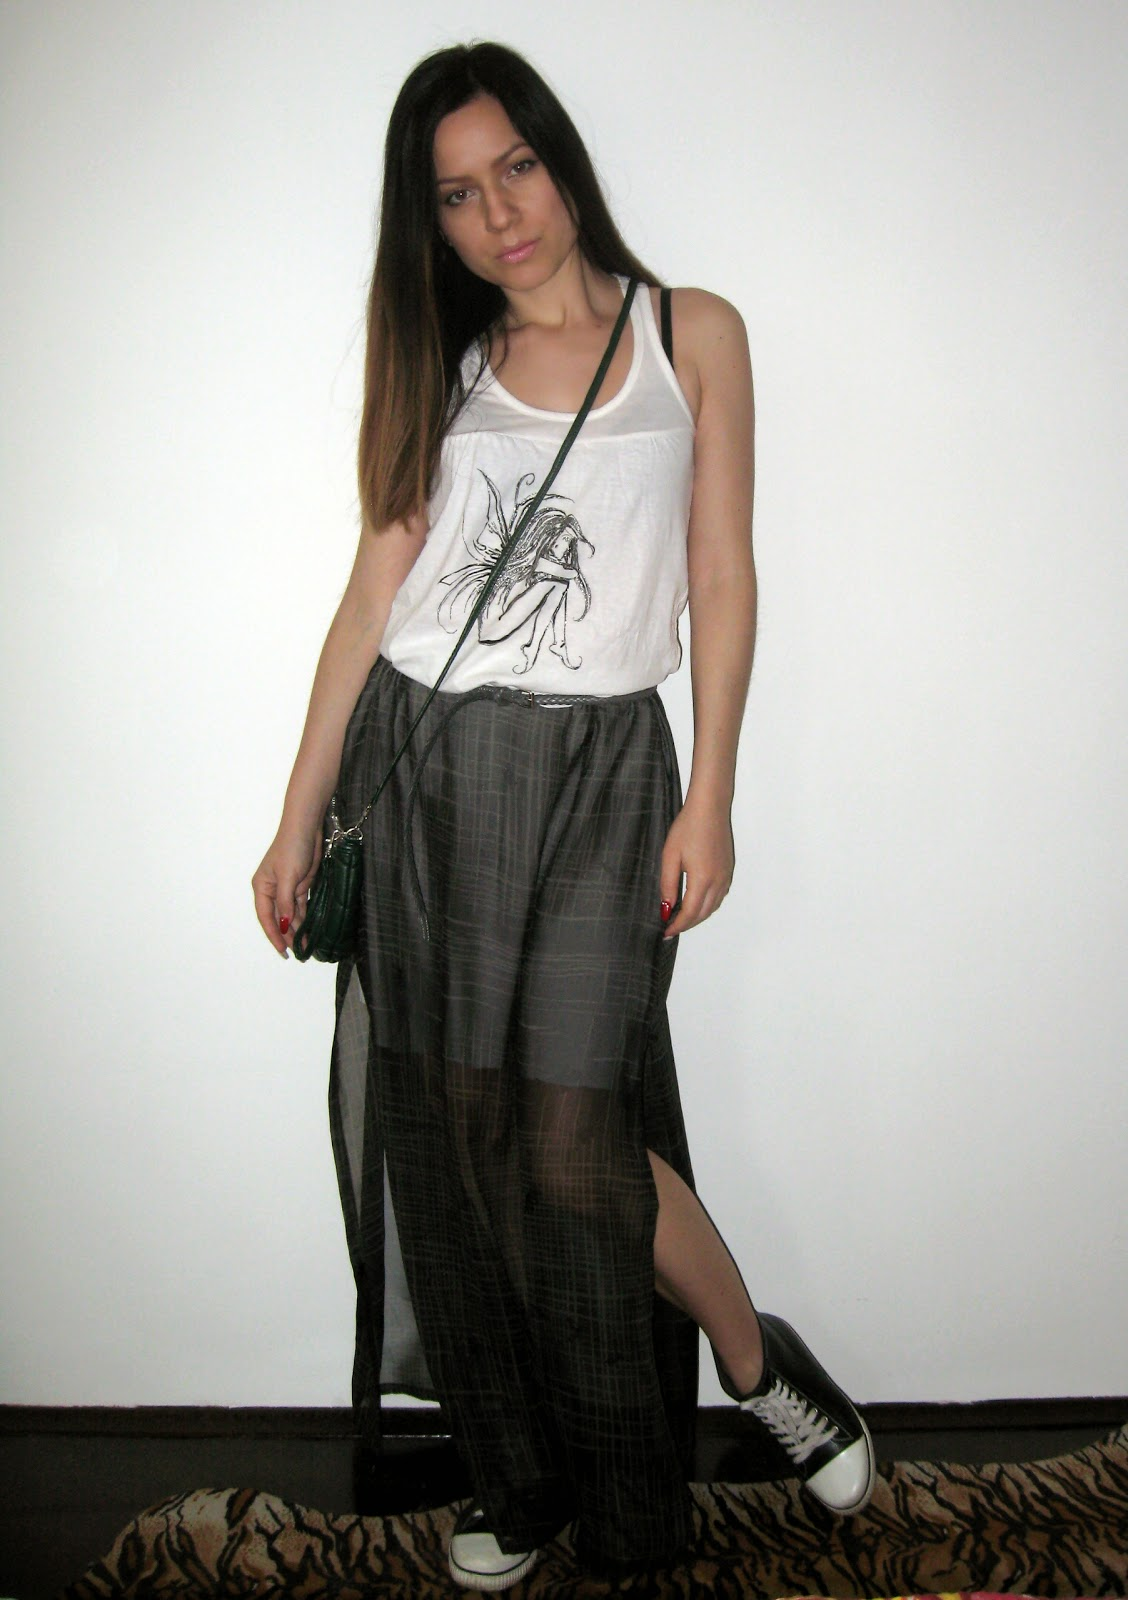 sheer maxi skirt, white tank top, aldo sneakers, black converse, green over the shoulder bag, casual outfit, thrifted maxi skirt, DIY maxi skirt